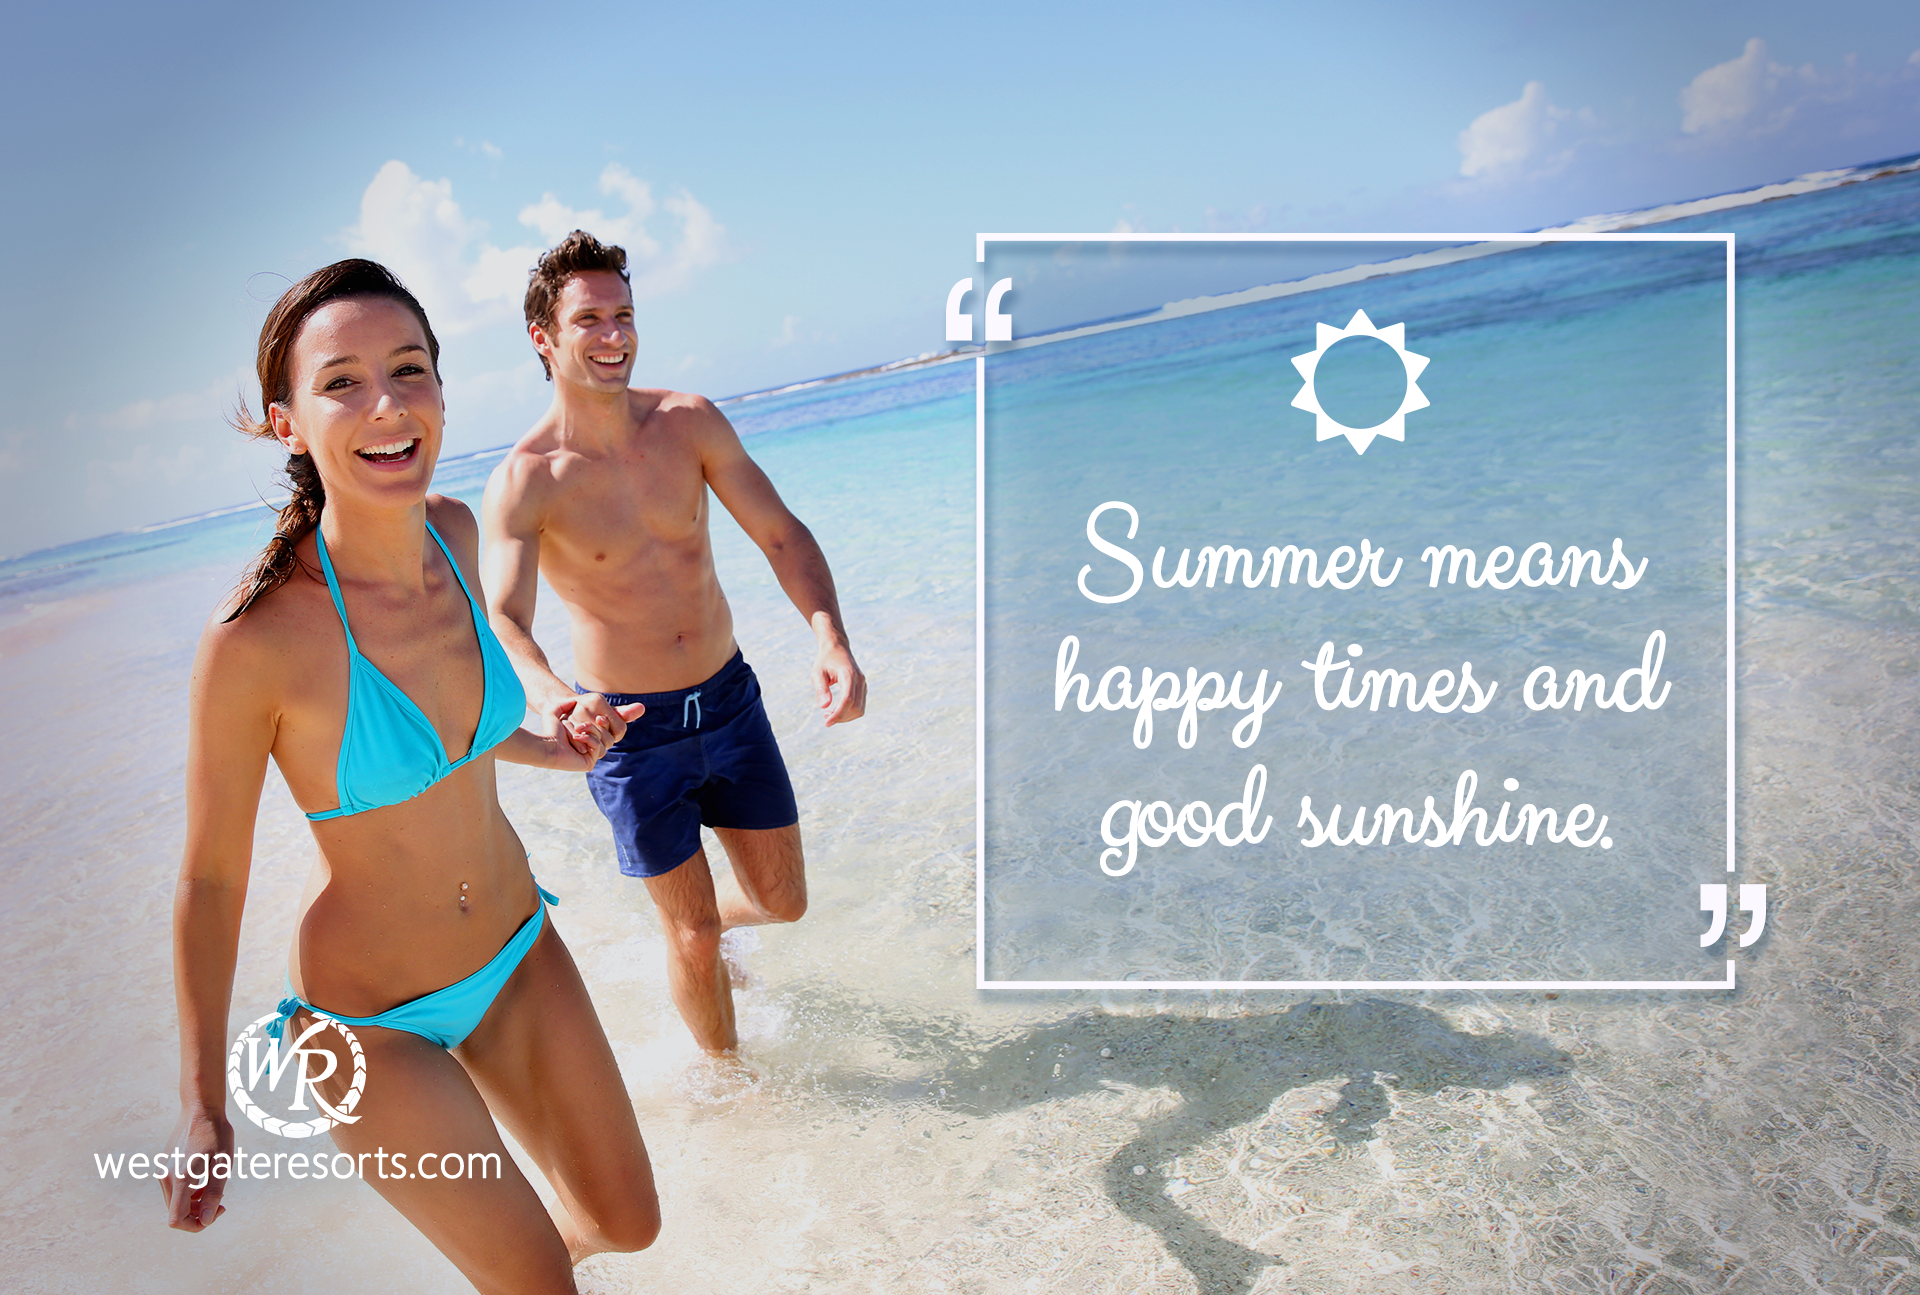 Summer means happy times and good sunshine | Quotes About Summer | Westgate Resorts